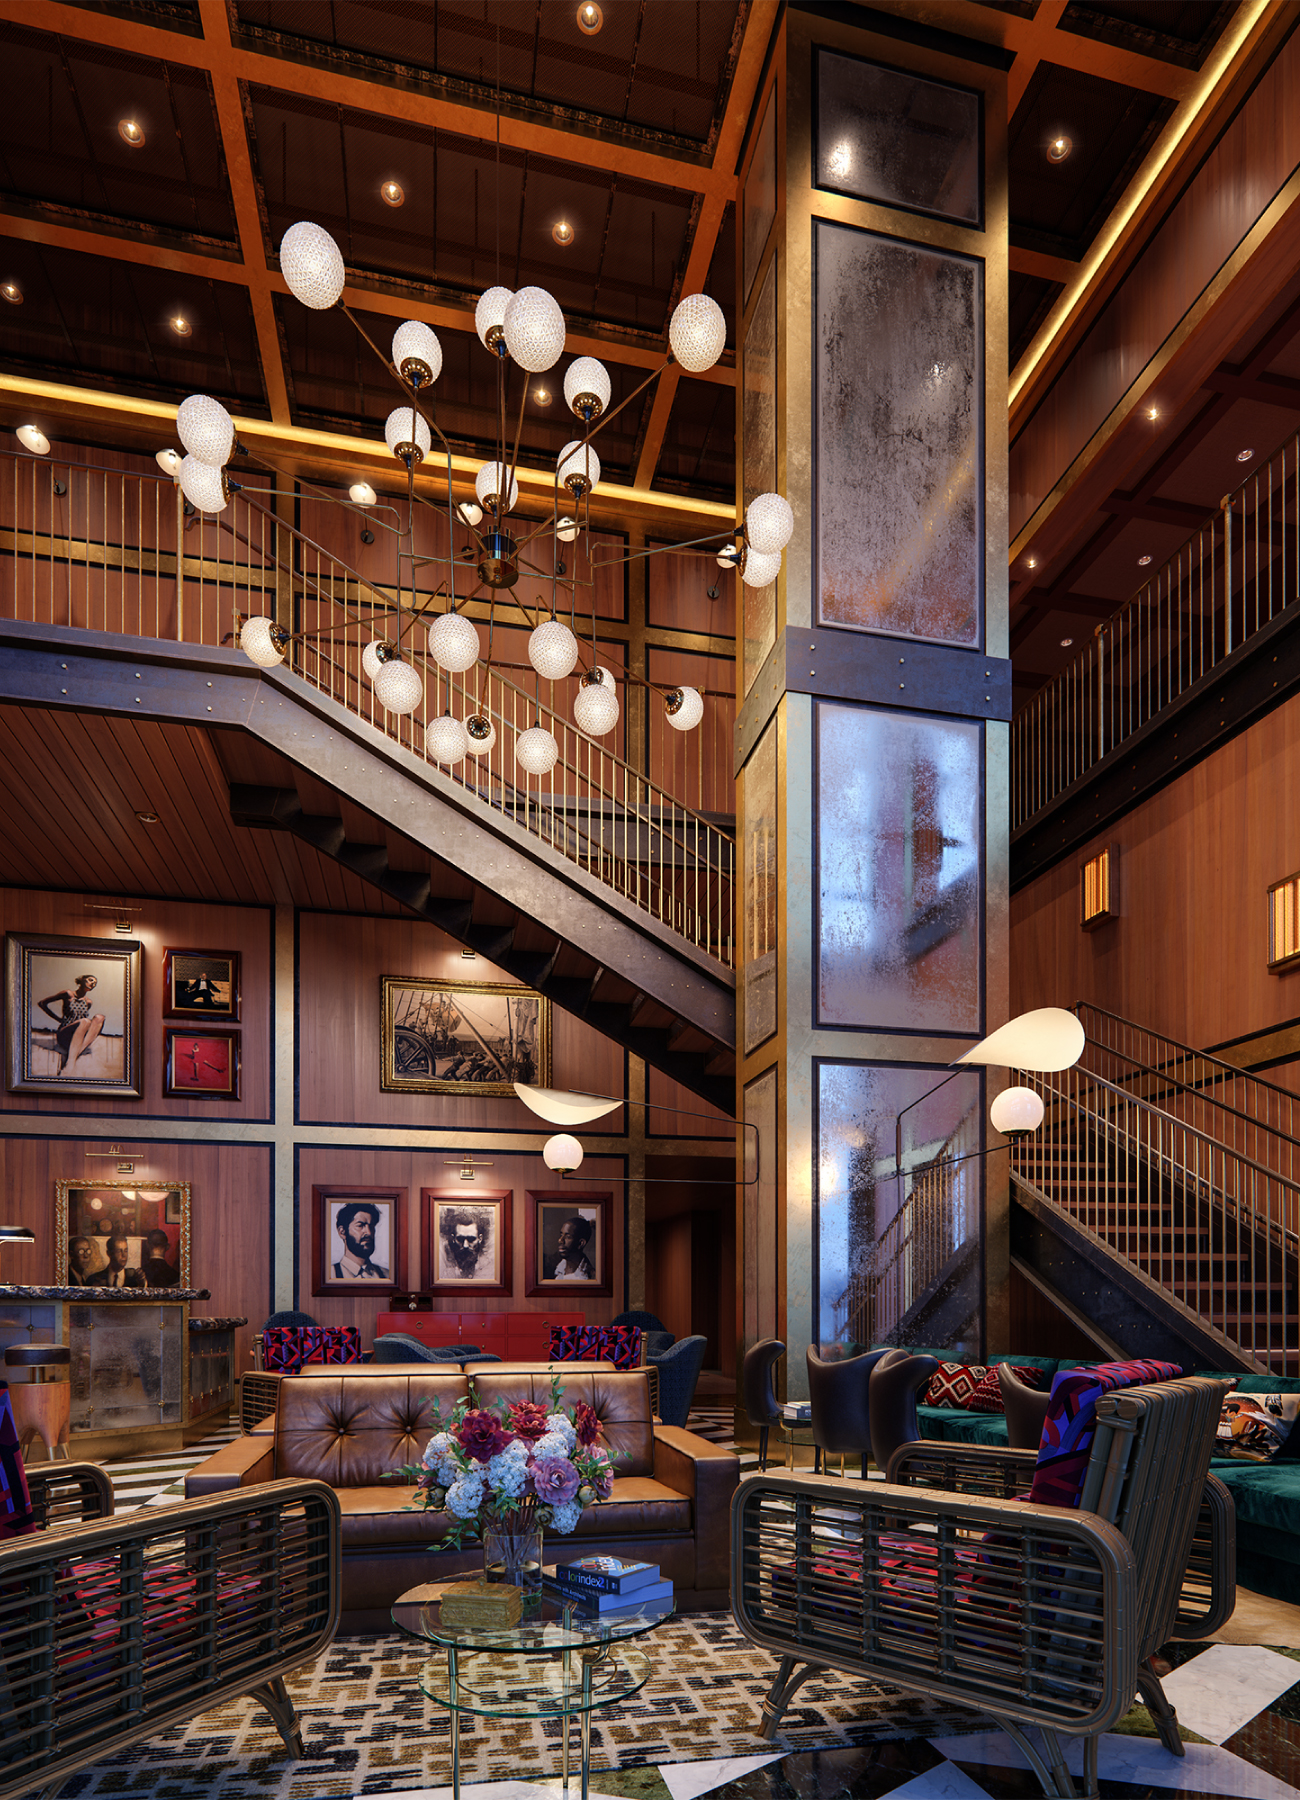 The developer made sure to include club-like amenities such as a double-height lobby, restaurant and wine room – all to encourage people to mingle and meet.